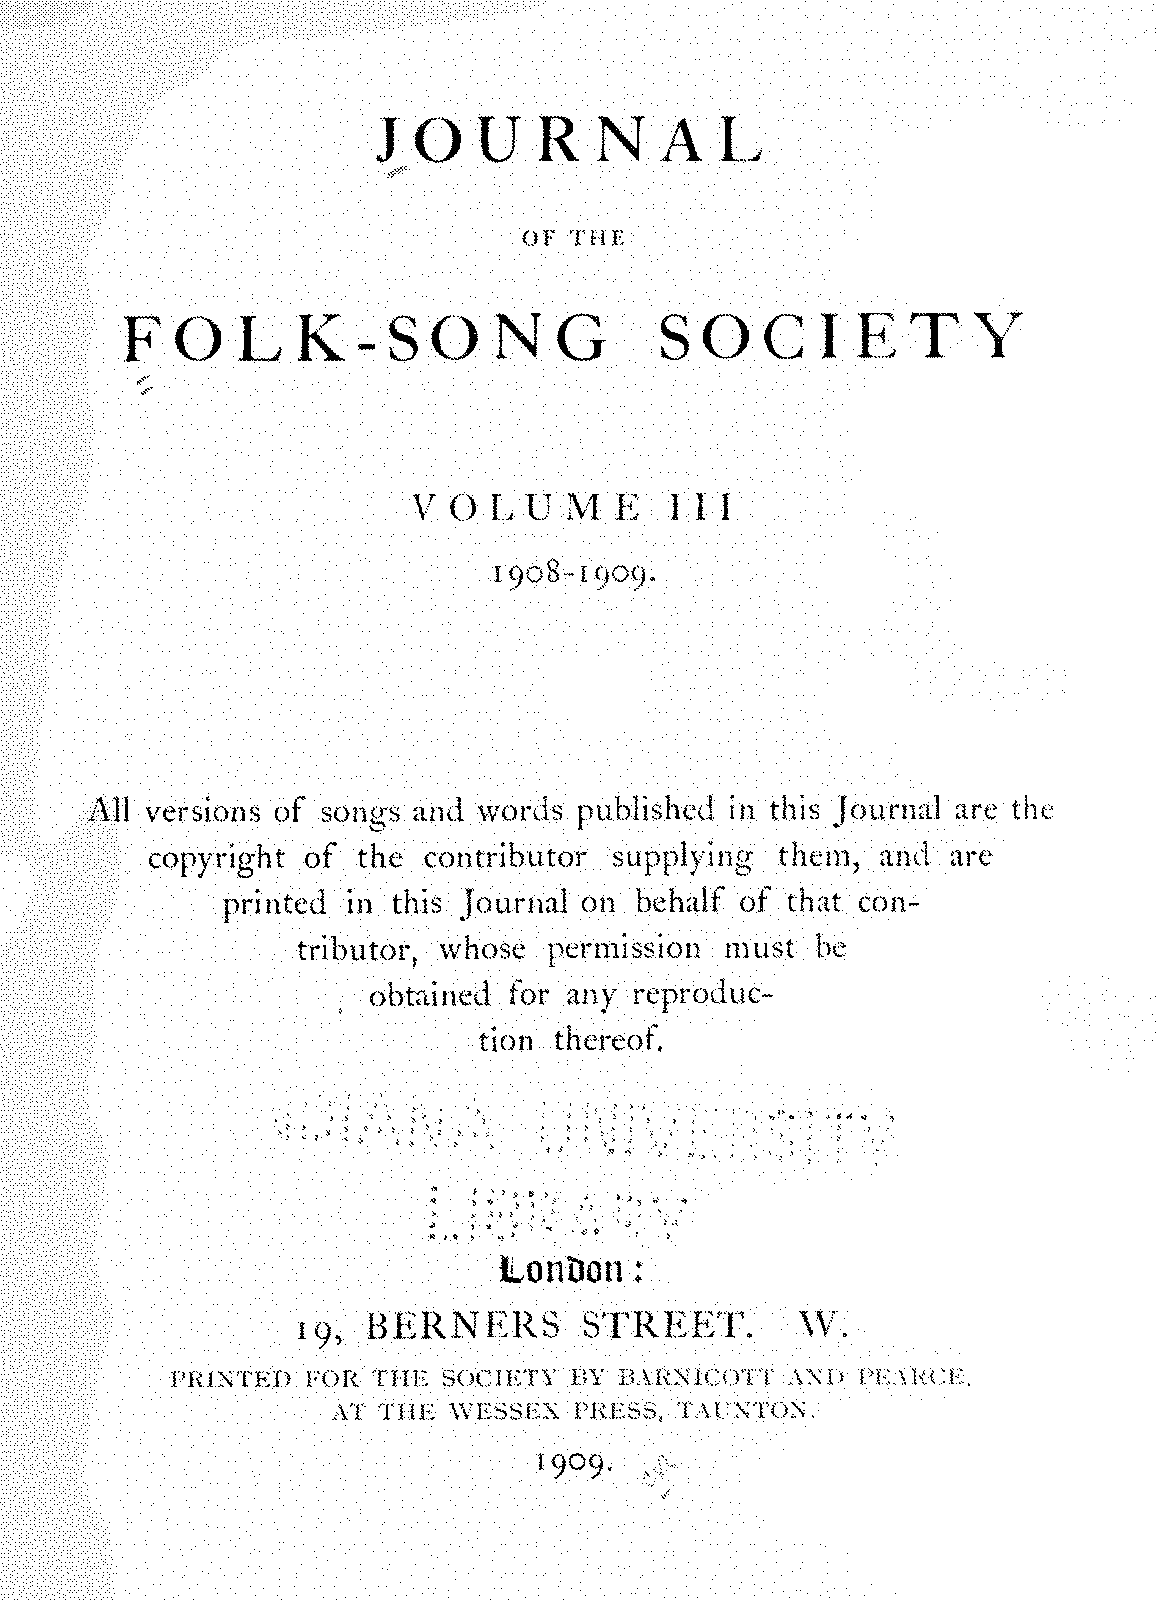 PMLP398620-journaloffolkson03folk JFSS vol3, No.10.pdf